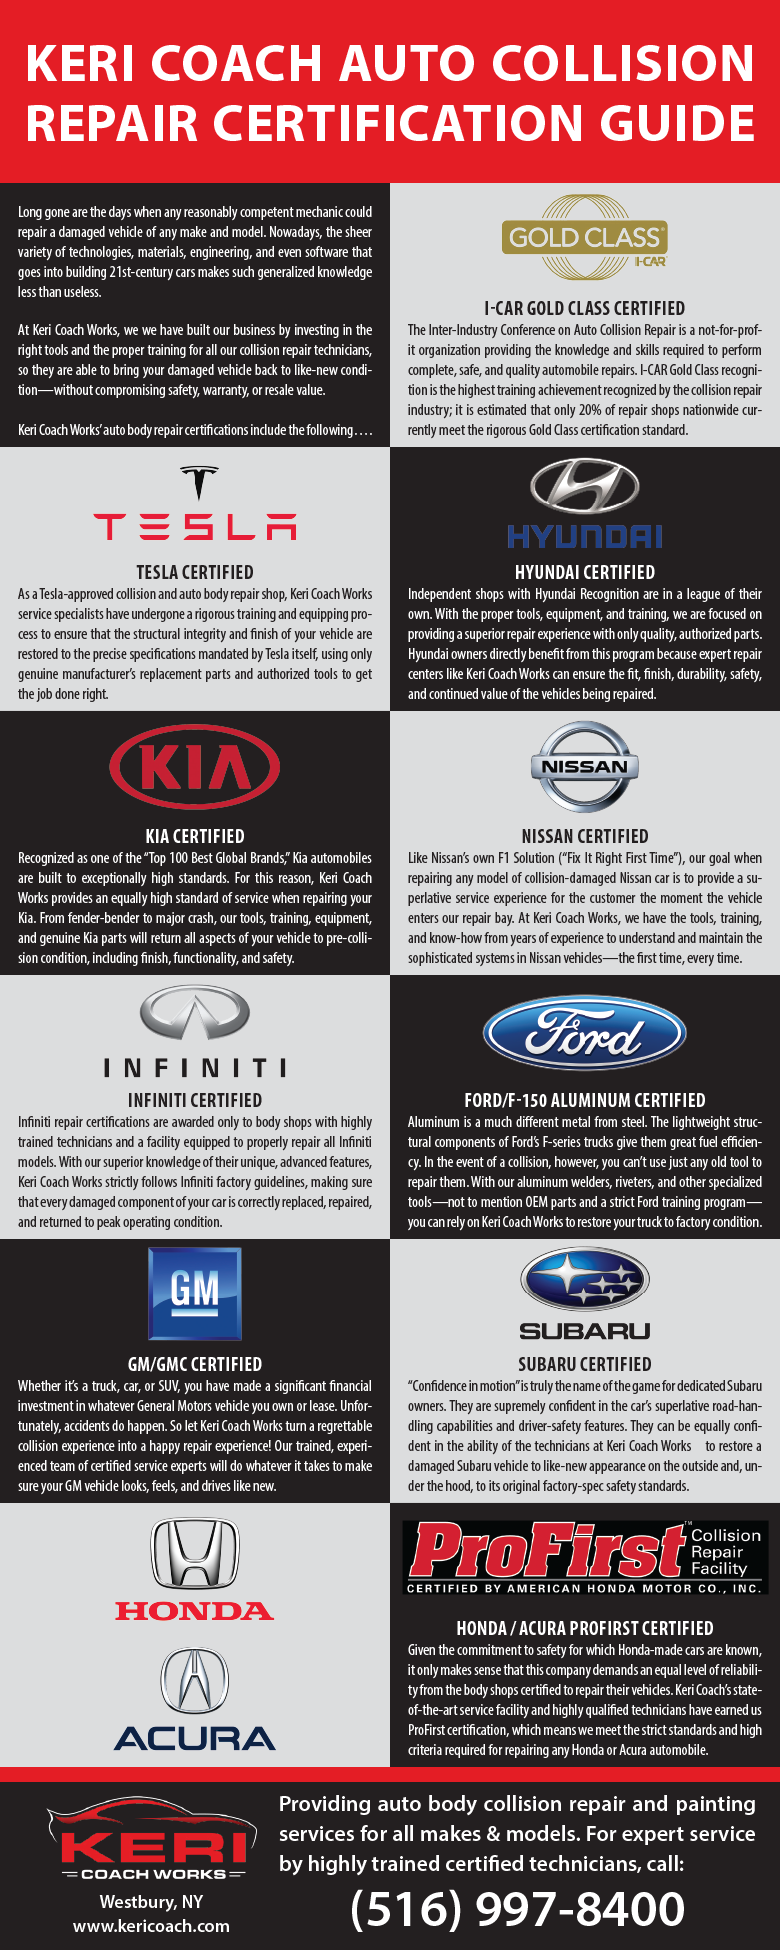 Certification Guide Infographic